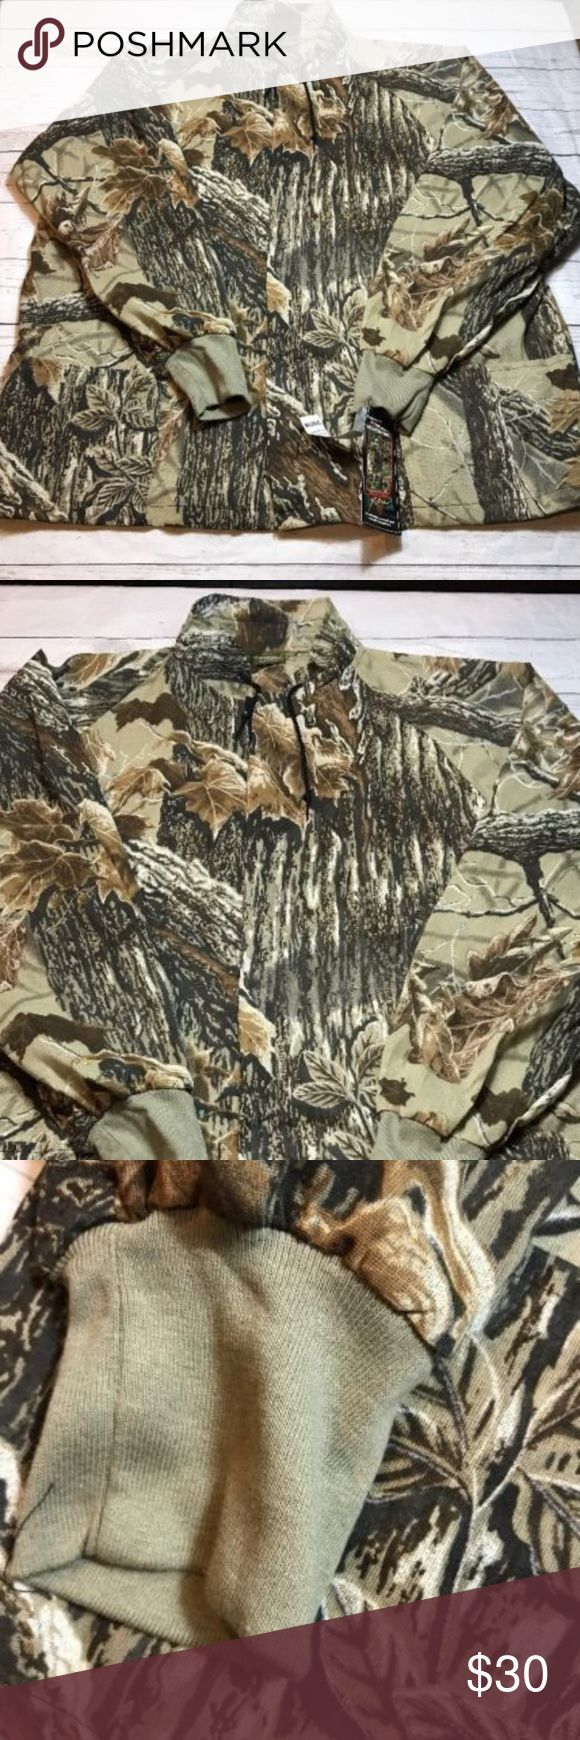 "Realtree Jacket Men's L/XL NWT Camouflage Full Zip Real tree Spartan men's Net jacket. This has no lining. 2 pockets to front. Draw string neck. New with tags. Tag states L/XL.  Chest: 26""  Length: 29.5""  Thanks for looking!  Please subscribe to my store for updates on new items!  E Realtree Jackets & Coats Military & Field"